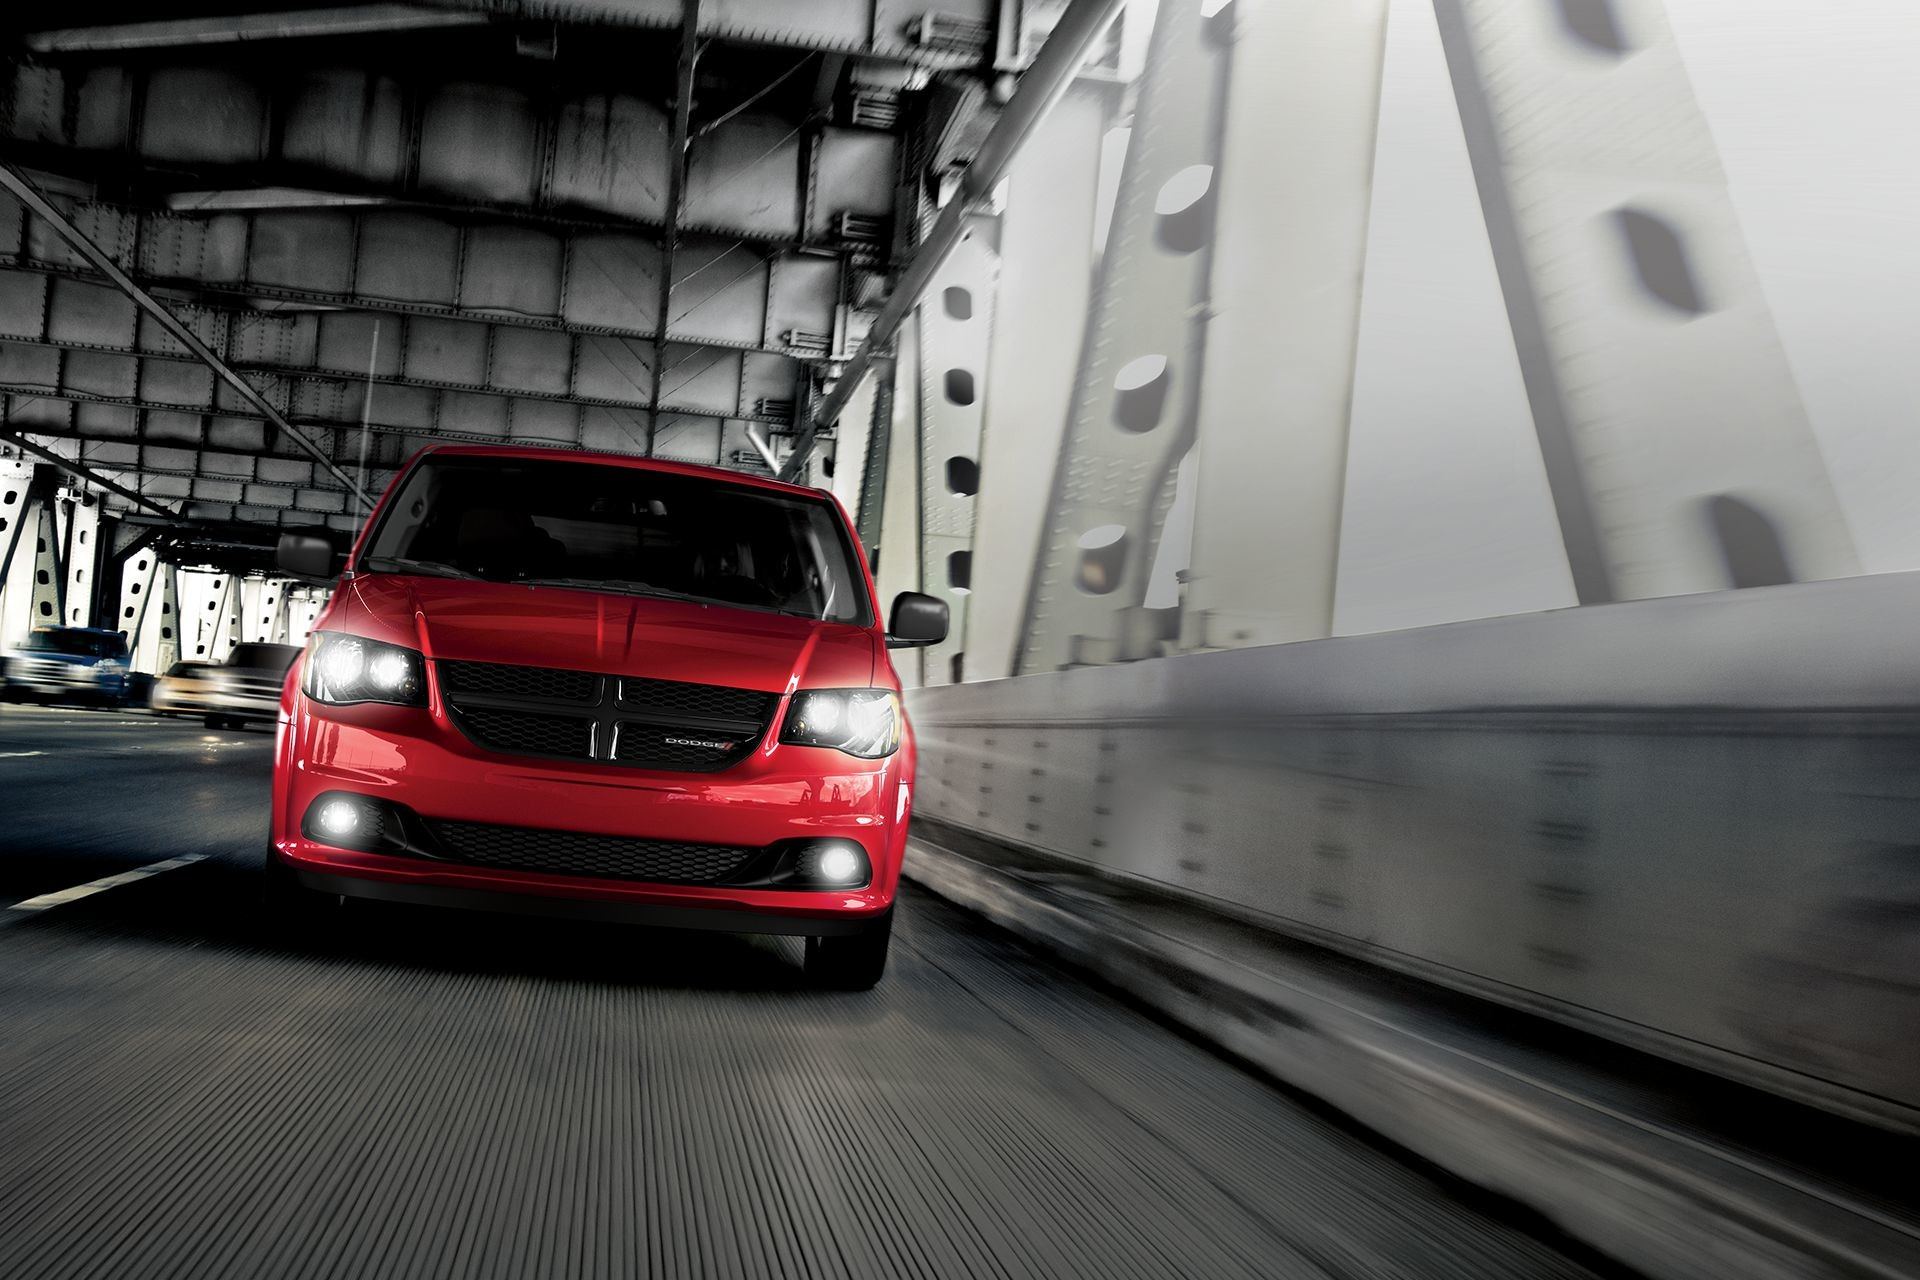 2018 Dodge Grand Caravan Exterior shown in Red